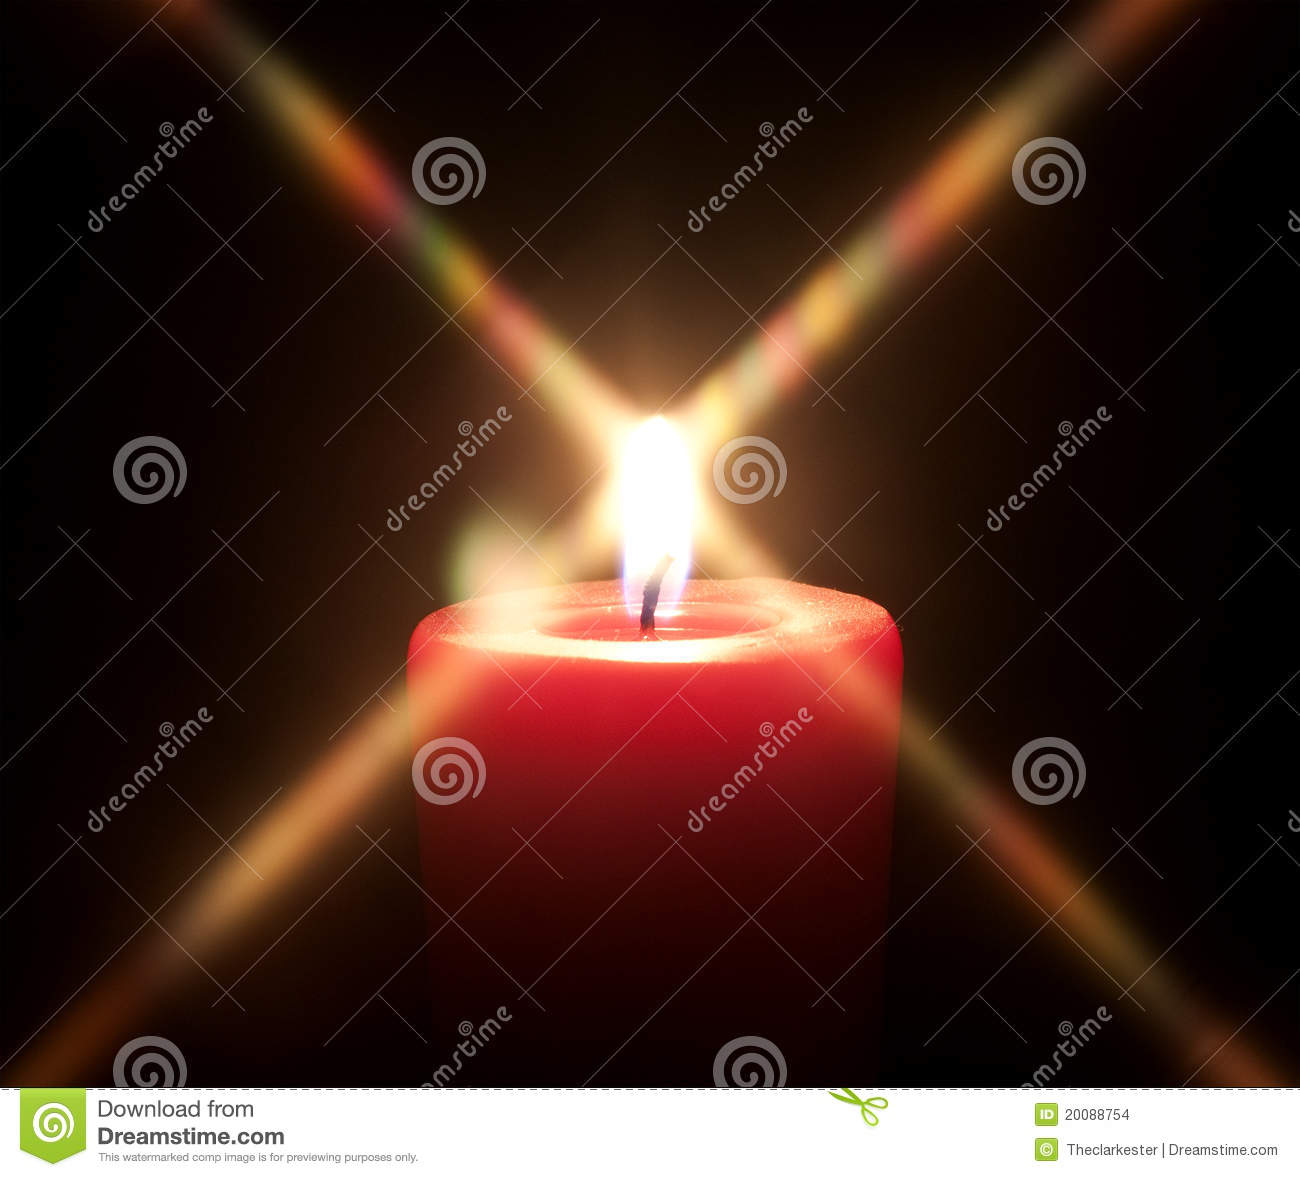 red candle black background - photo #16